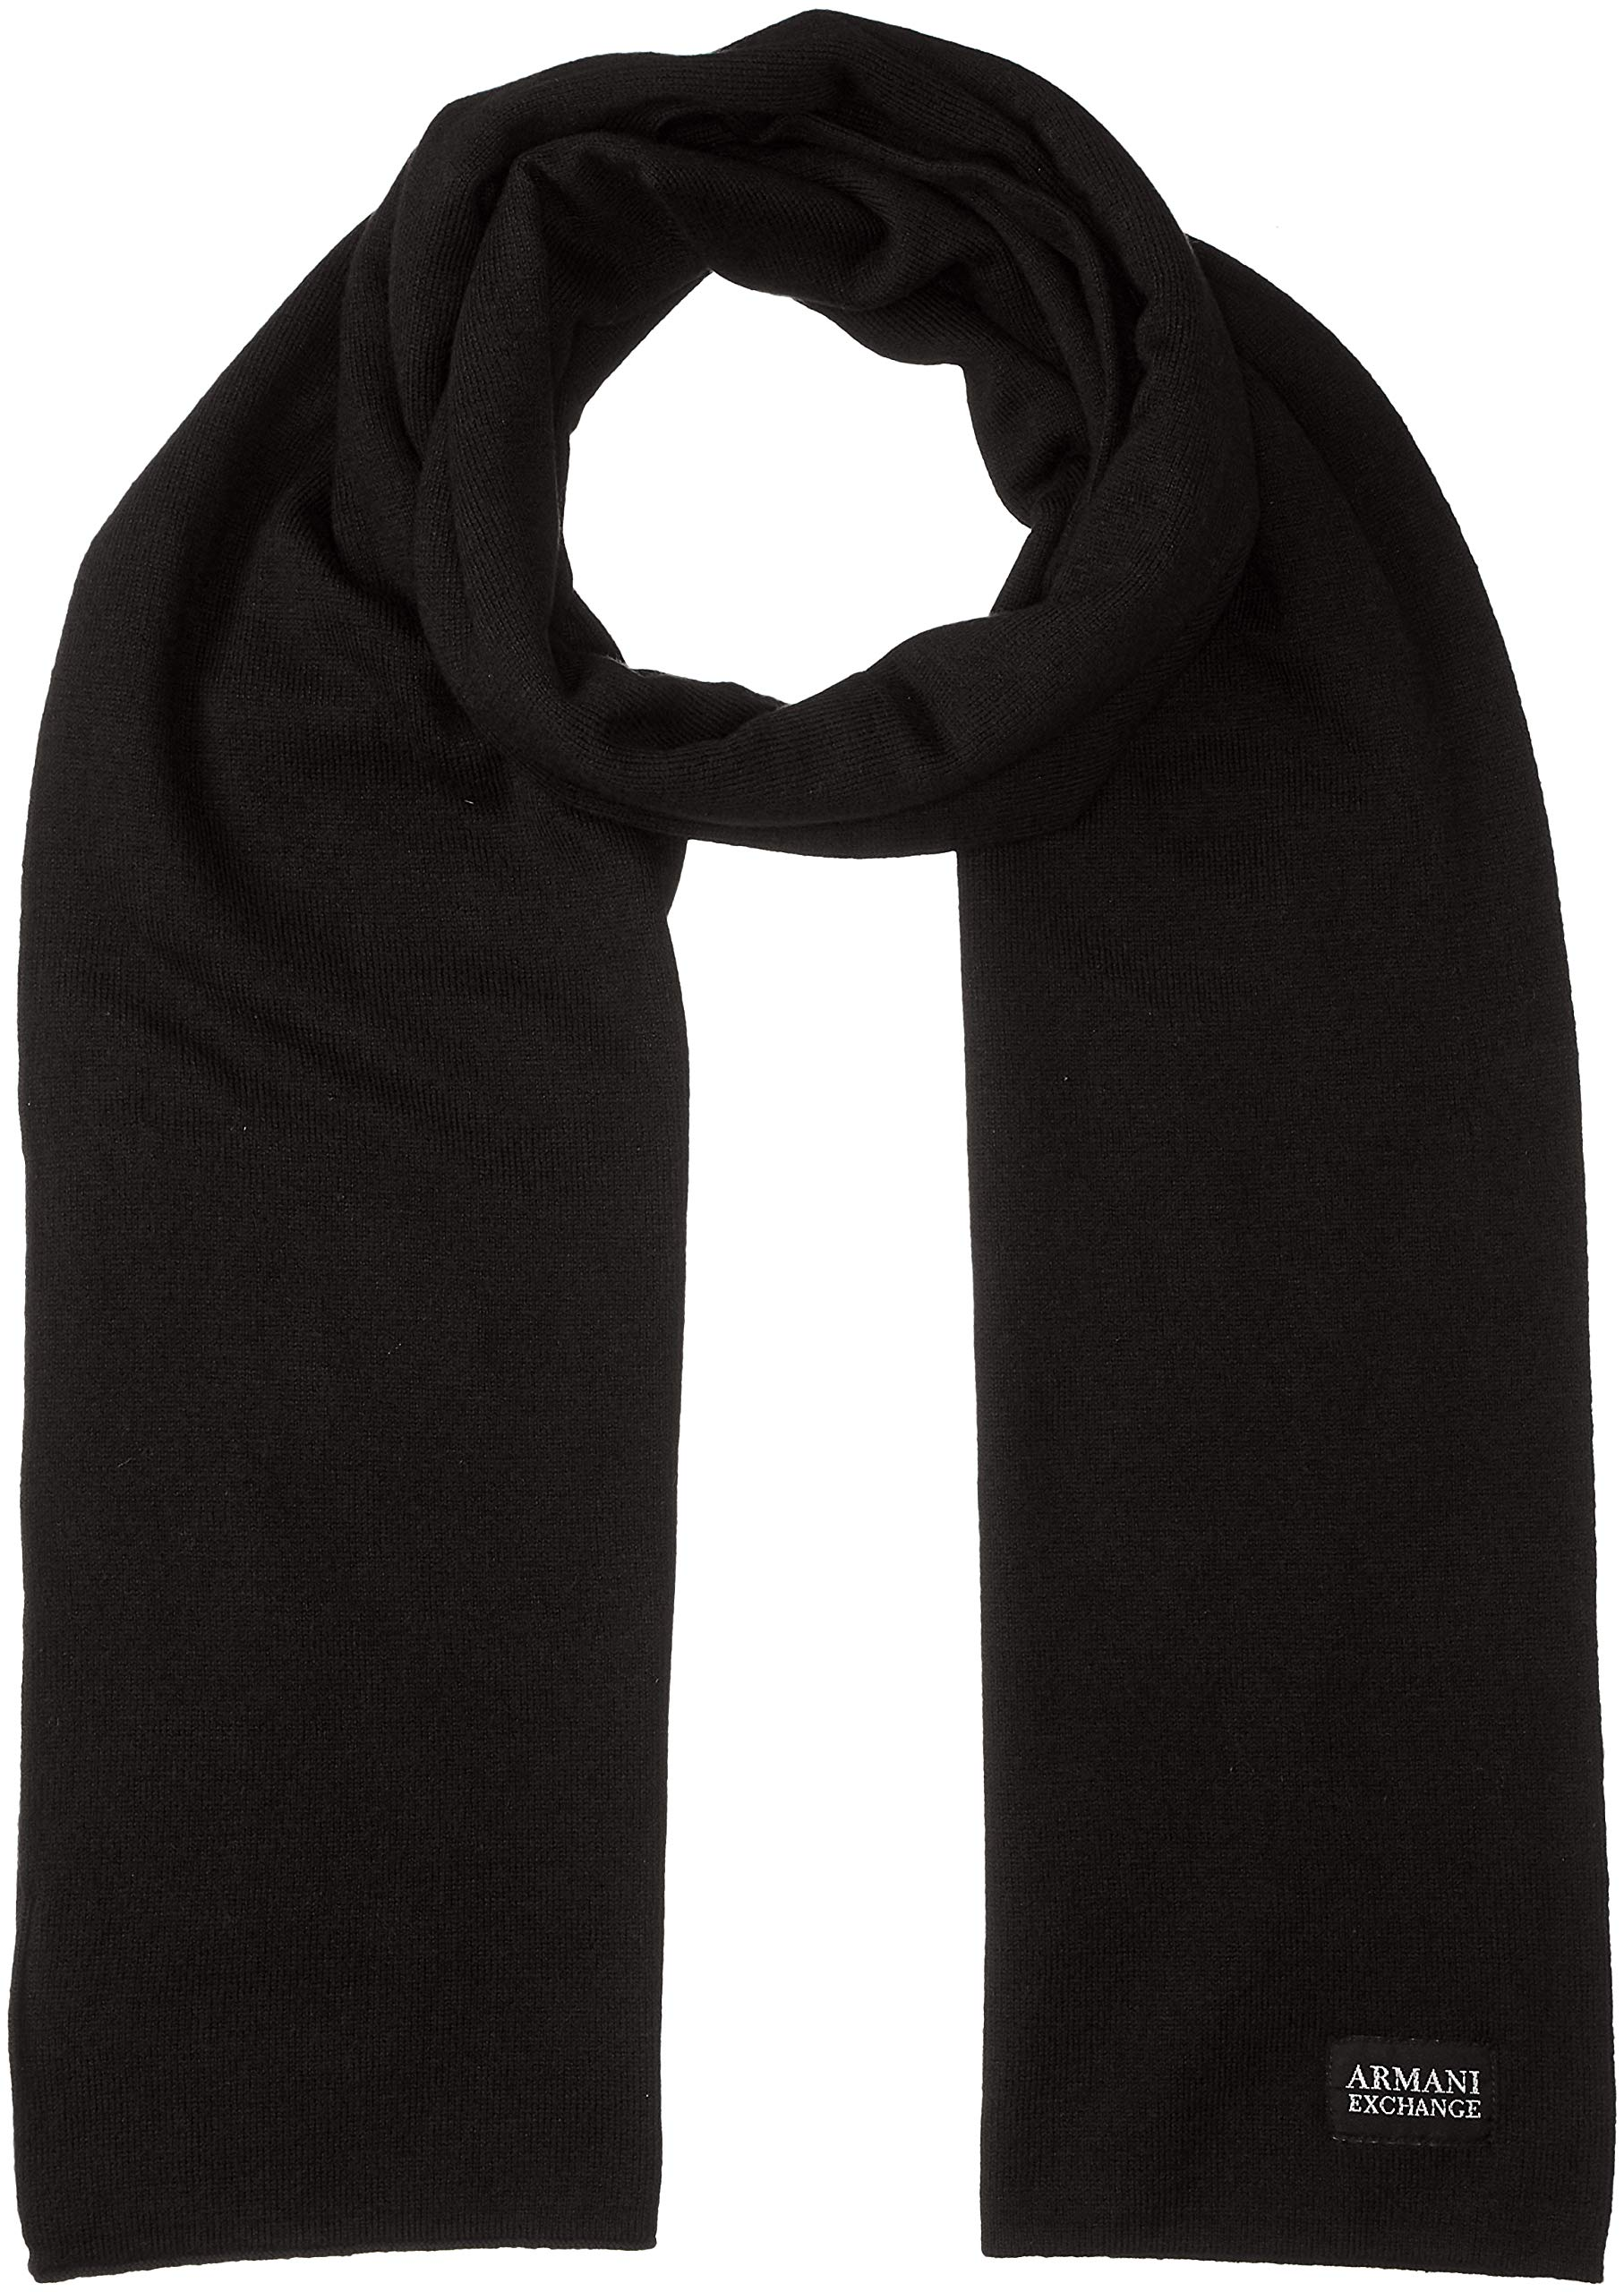 Armani Exchange Men's AX Cashmere Scarf, Black, ONE Size